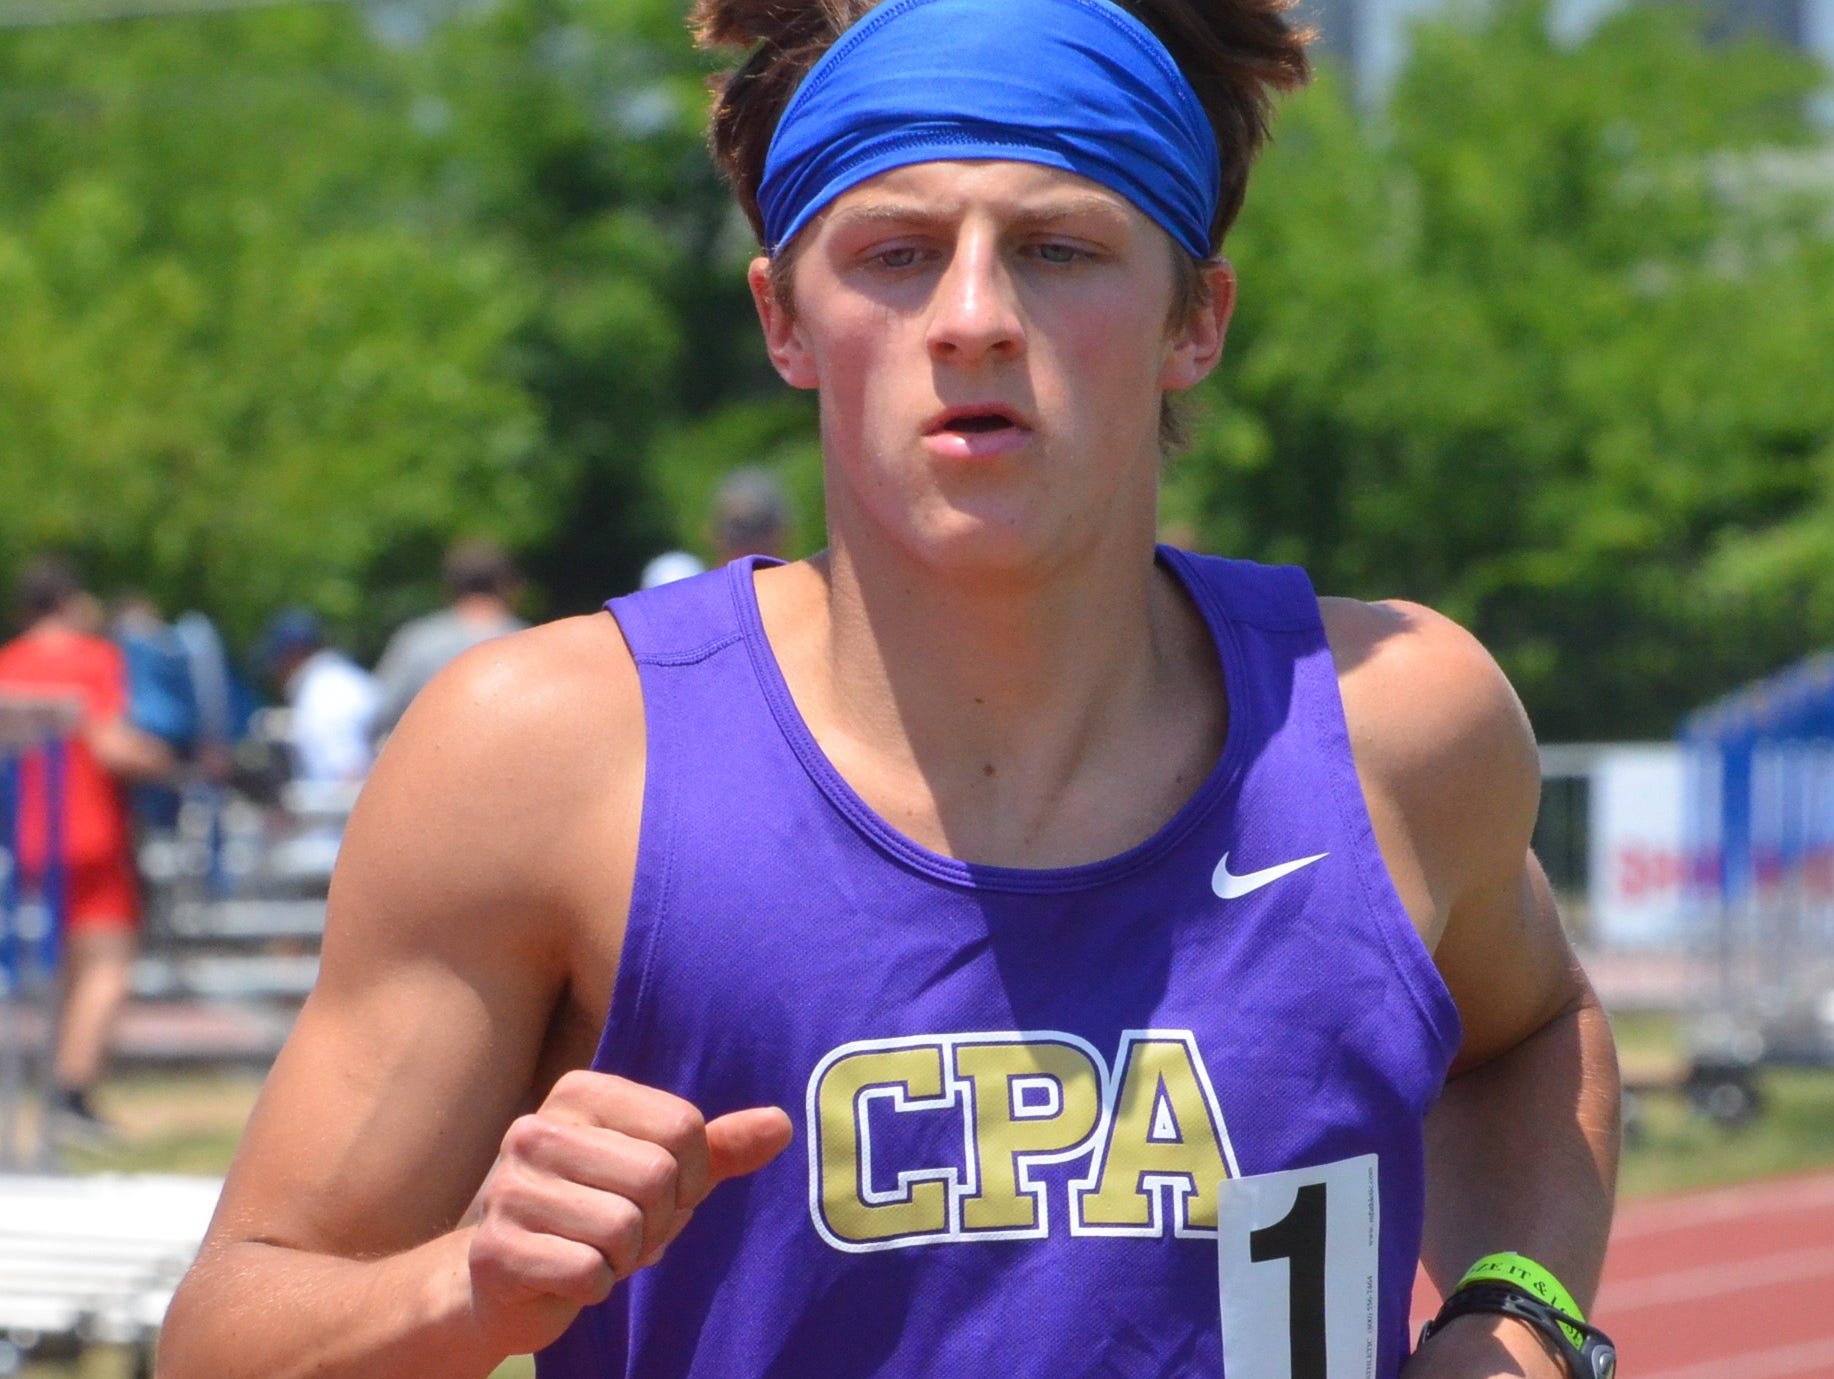 CPA senior William Stout won his second consecutive Class A-AA state decathlon championship on Tuesday at MTSU's Dean A. Hayes Stadium.